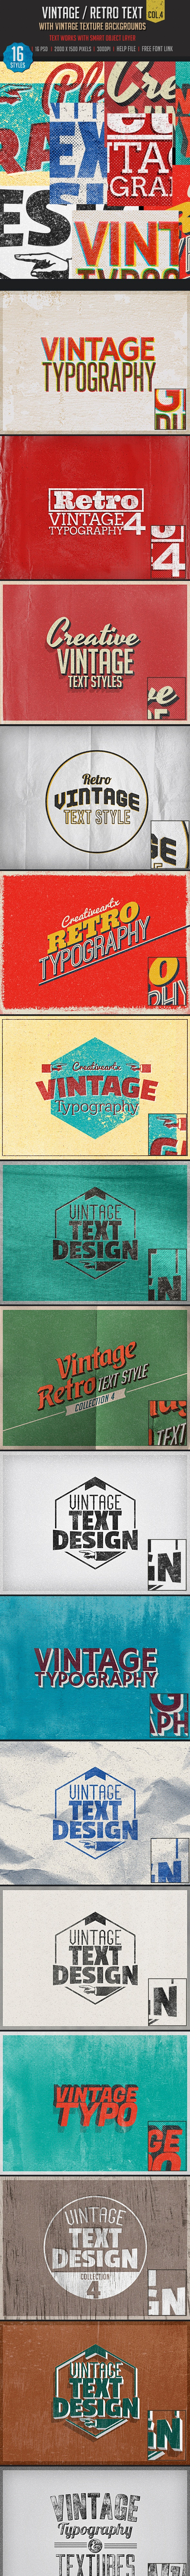 Vintage/Retro Text Col 4 - Text Effects Actions